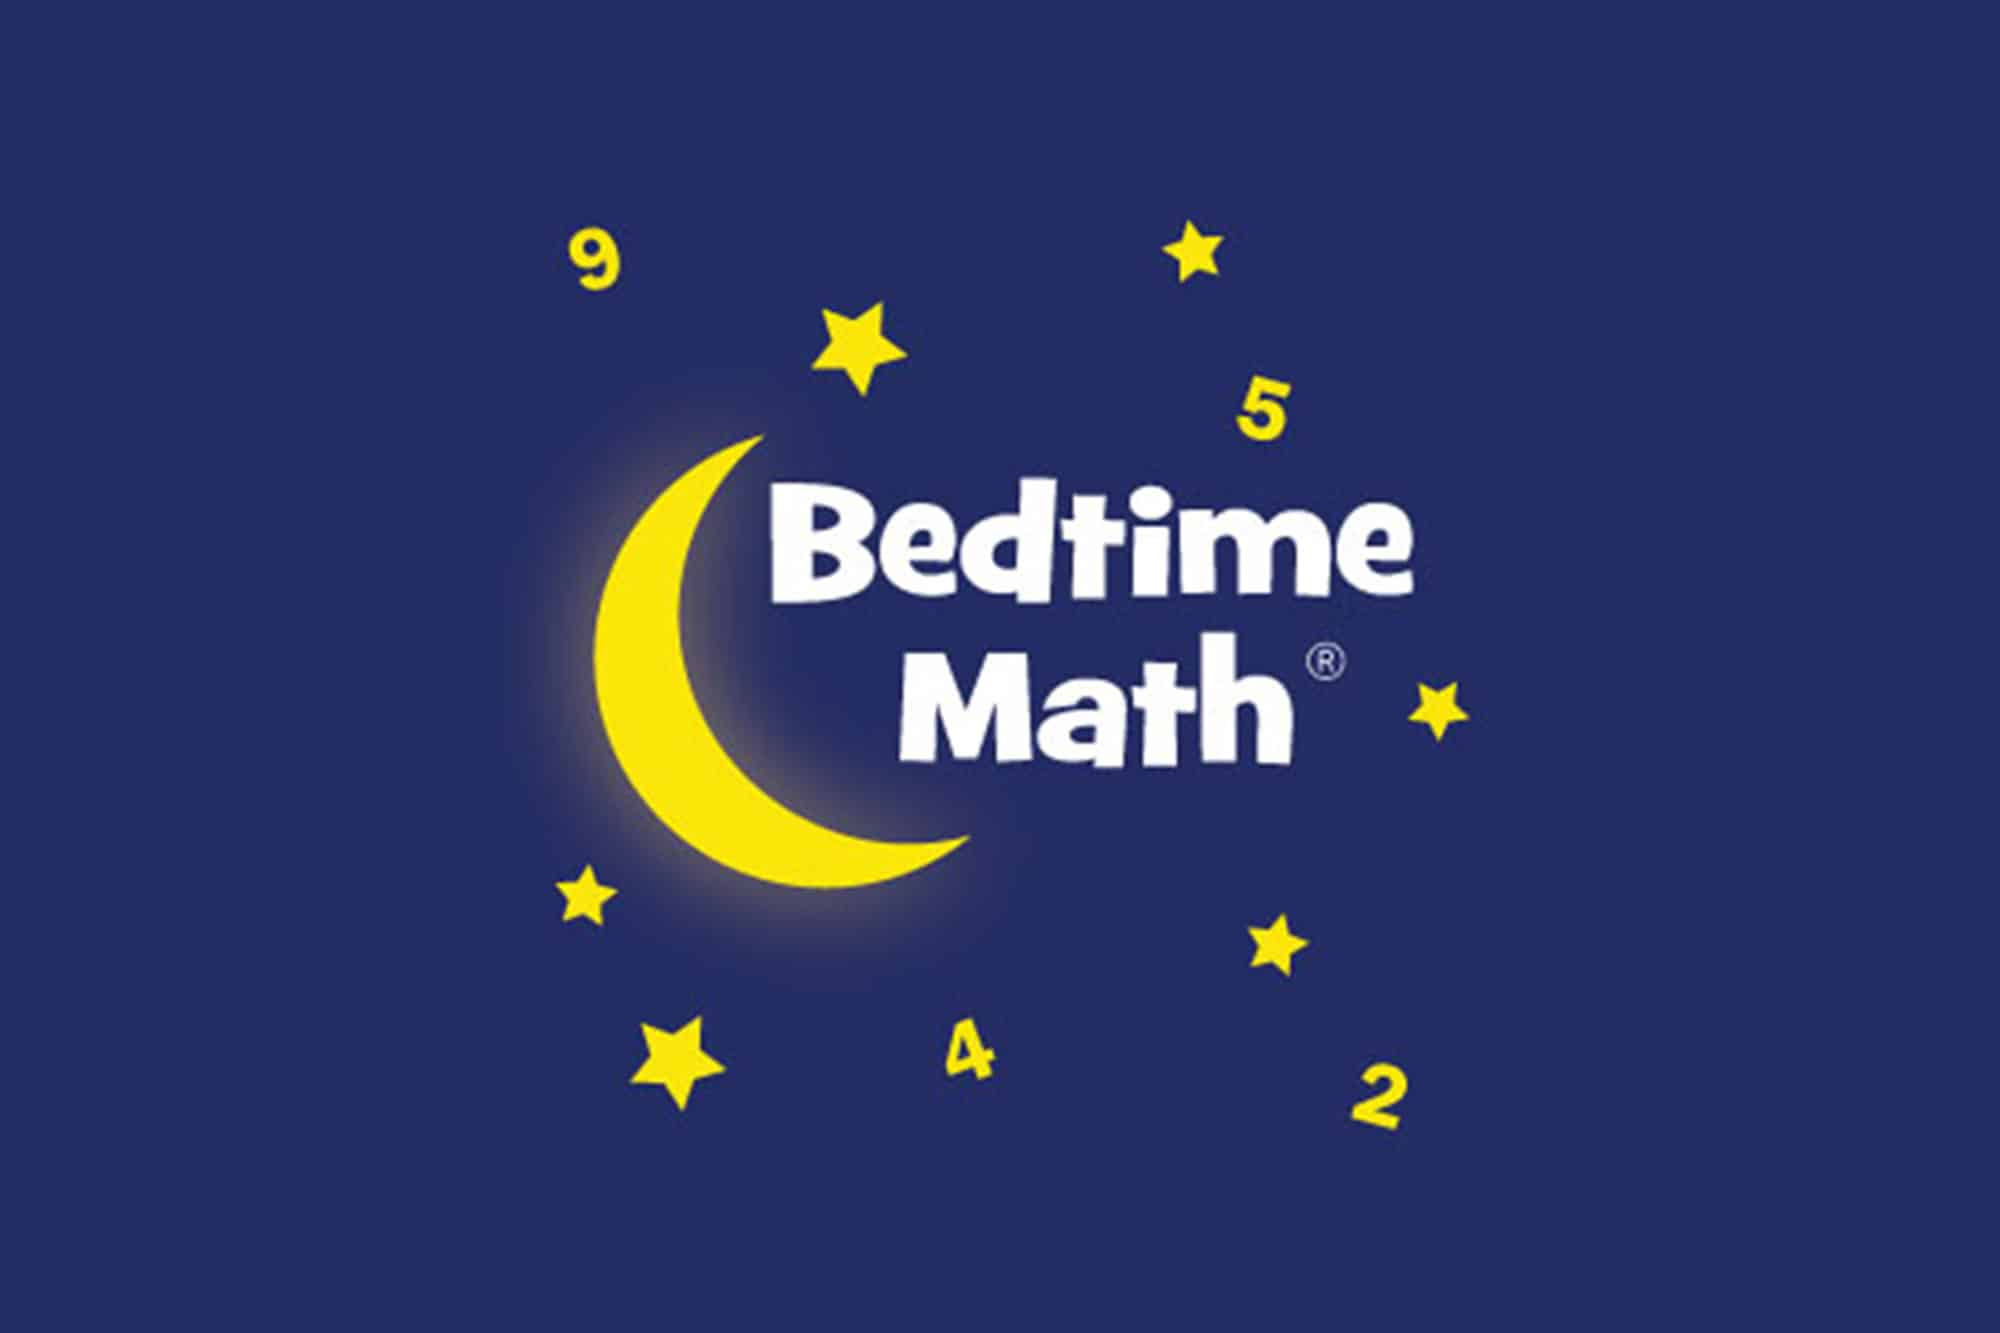 Bedtime Math launches hands-on math experiences to support grades 3-5 teachers during COVID-19